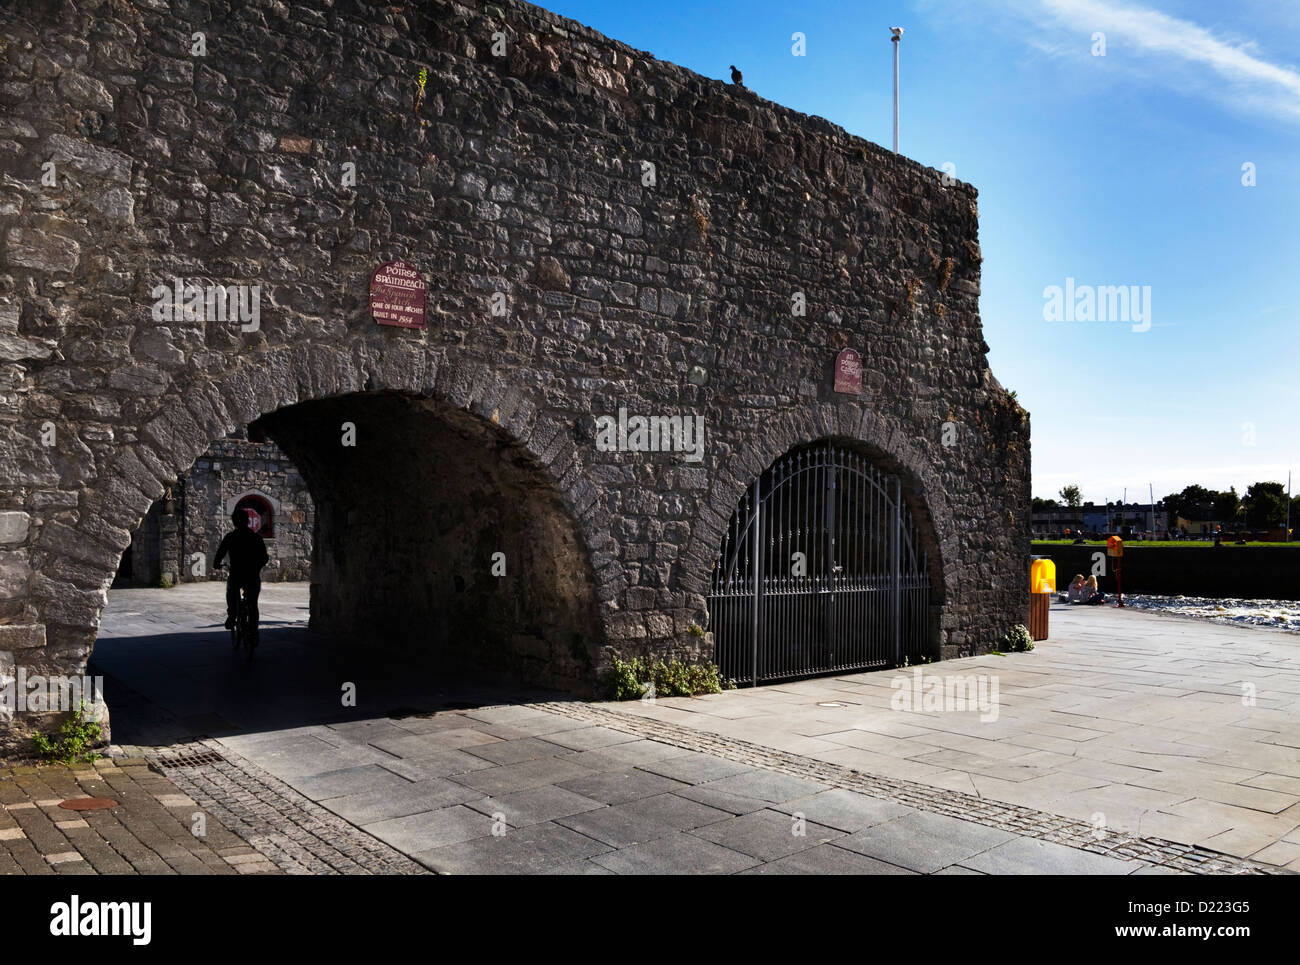 The Spanish Arch built 1584, Galway City, Ireland - Stock Image